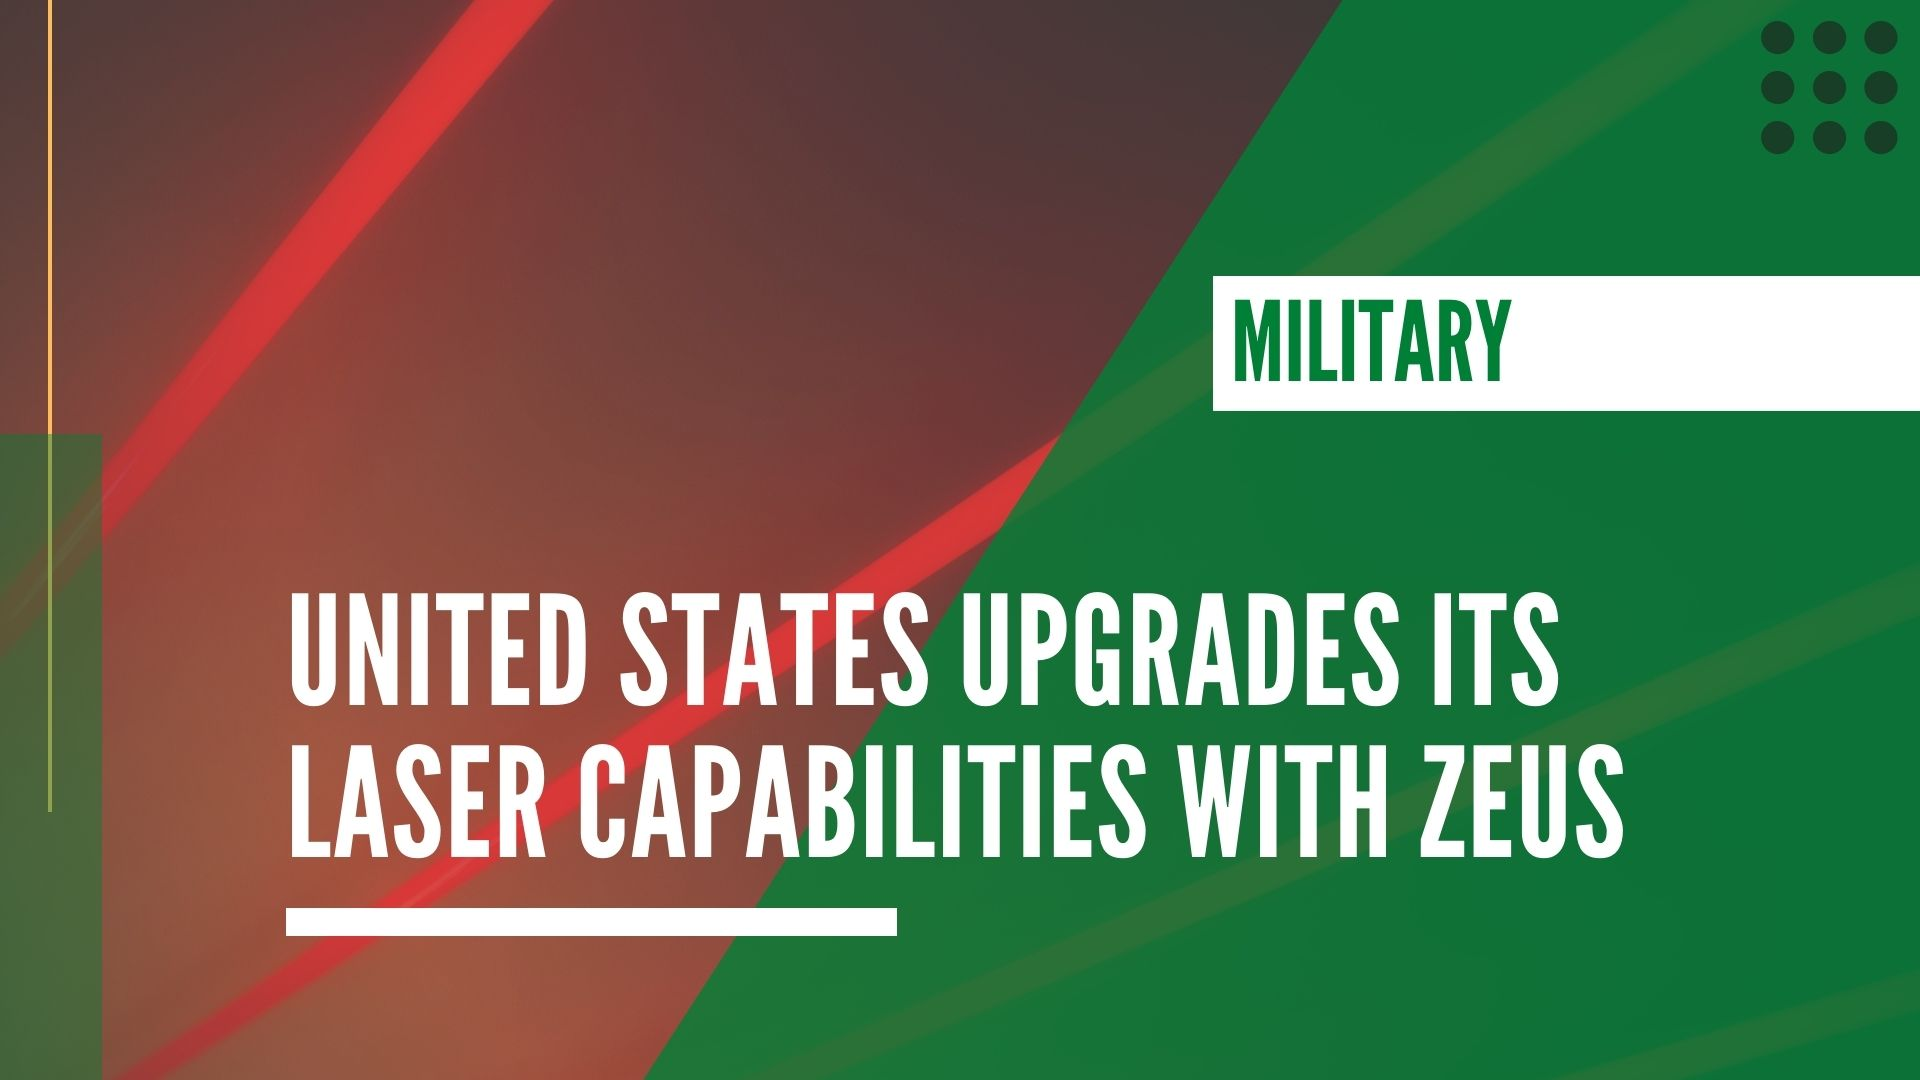 United States upgrades its laser capabilities with ZEUS